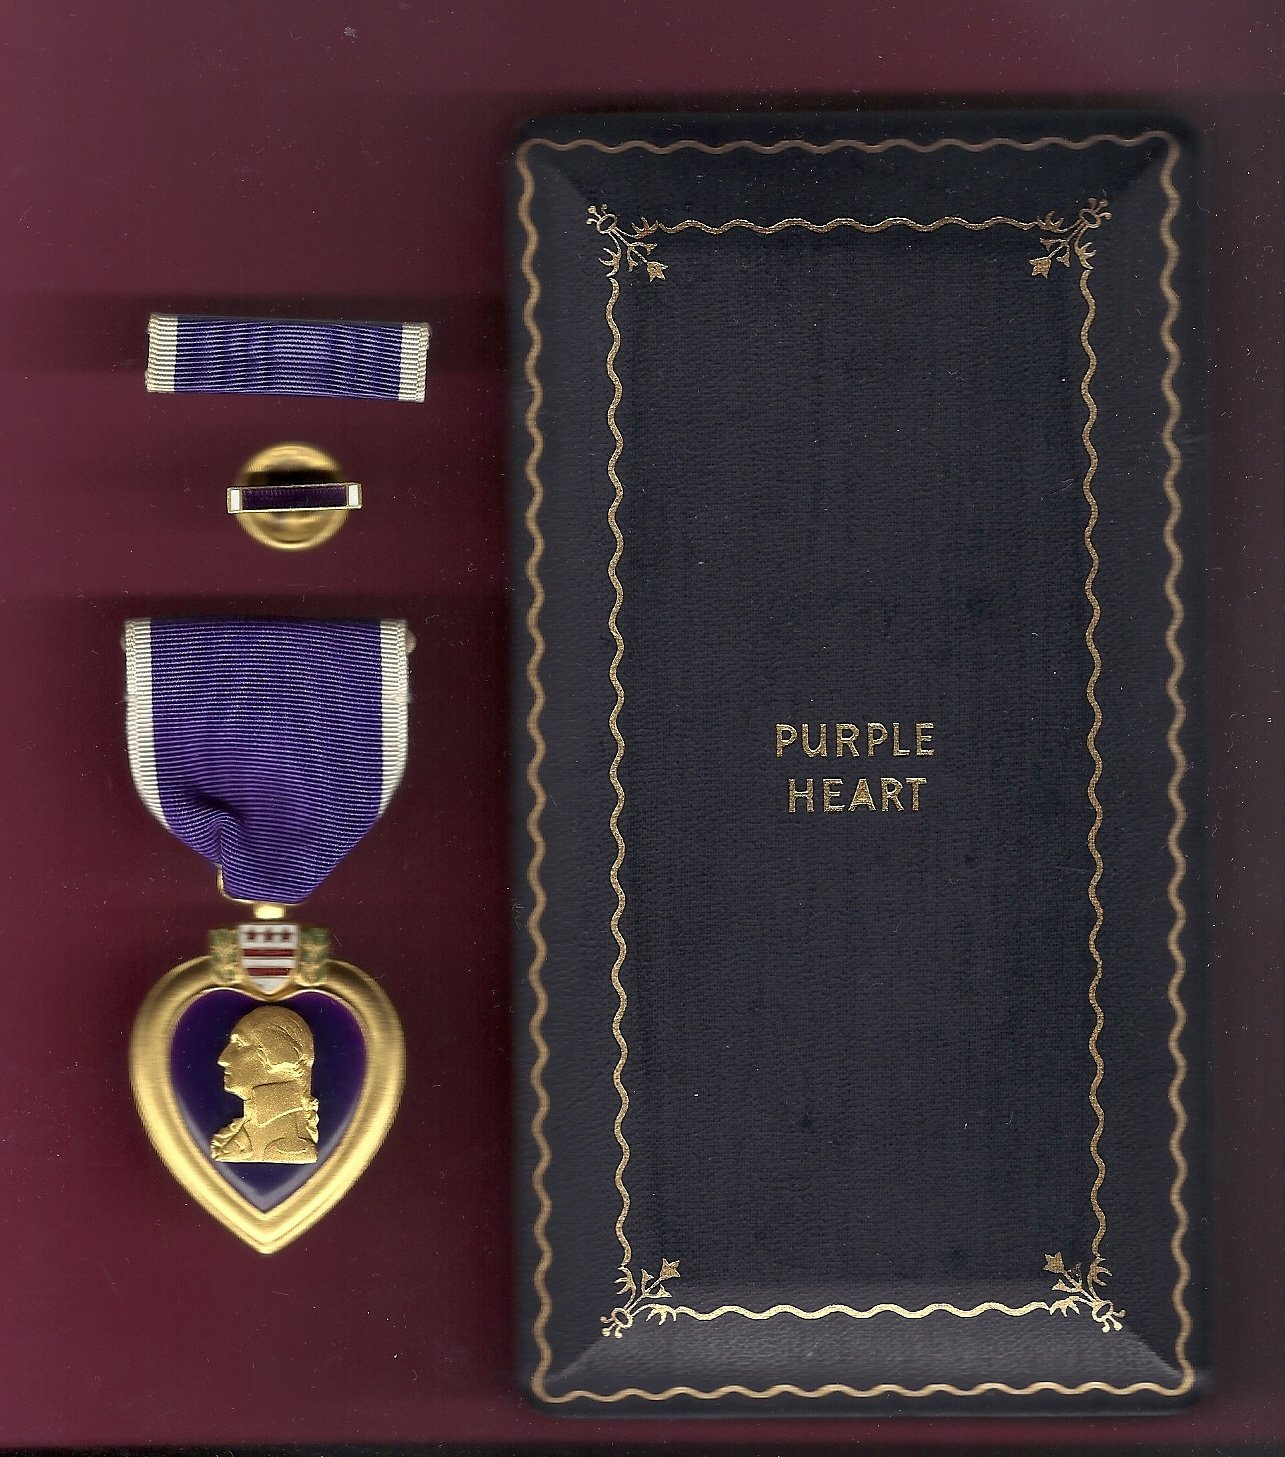 WWII Purple Heart Military Award medal in case with ribbon bar and lapel pin GENUINE